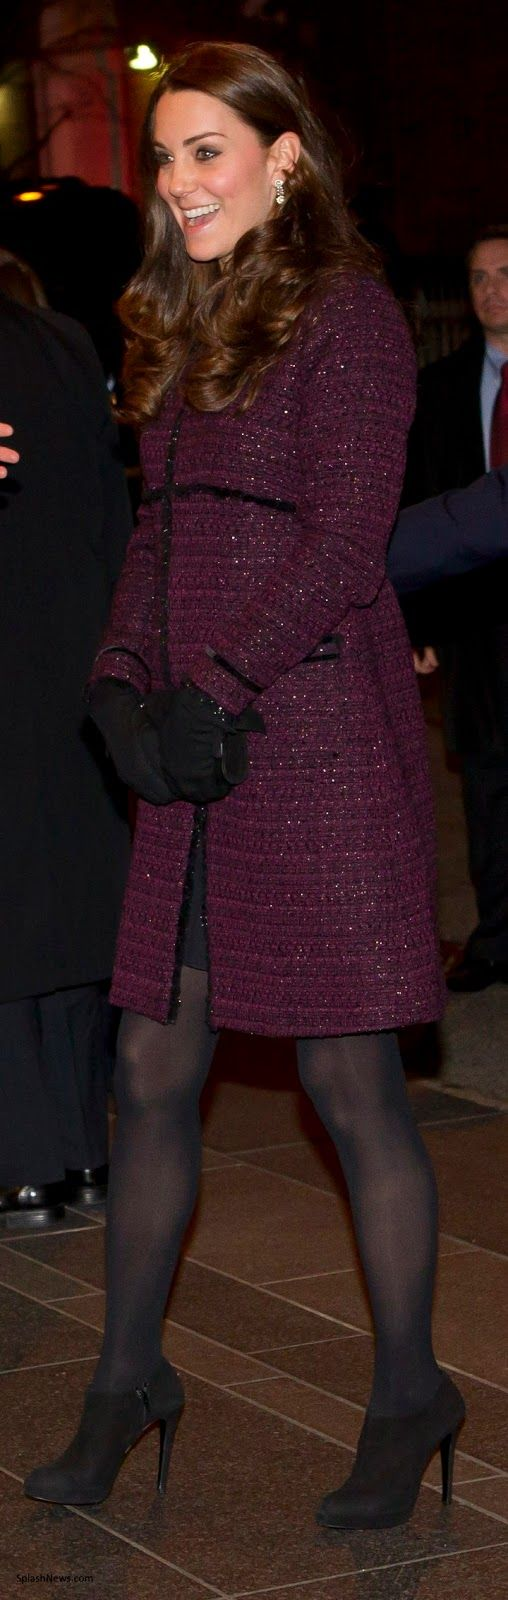 December 7, 2014 - Will and Kate arrive in New York! Kate is wearing a Seraphine maternity coat